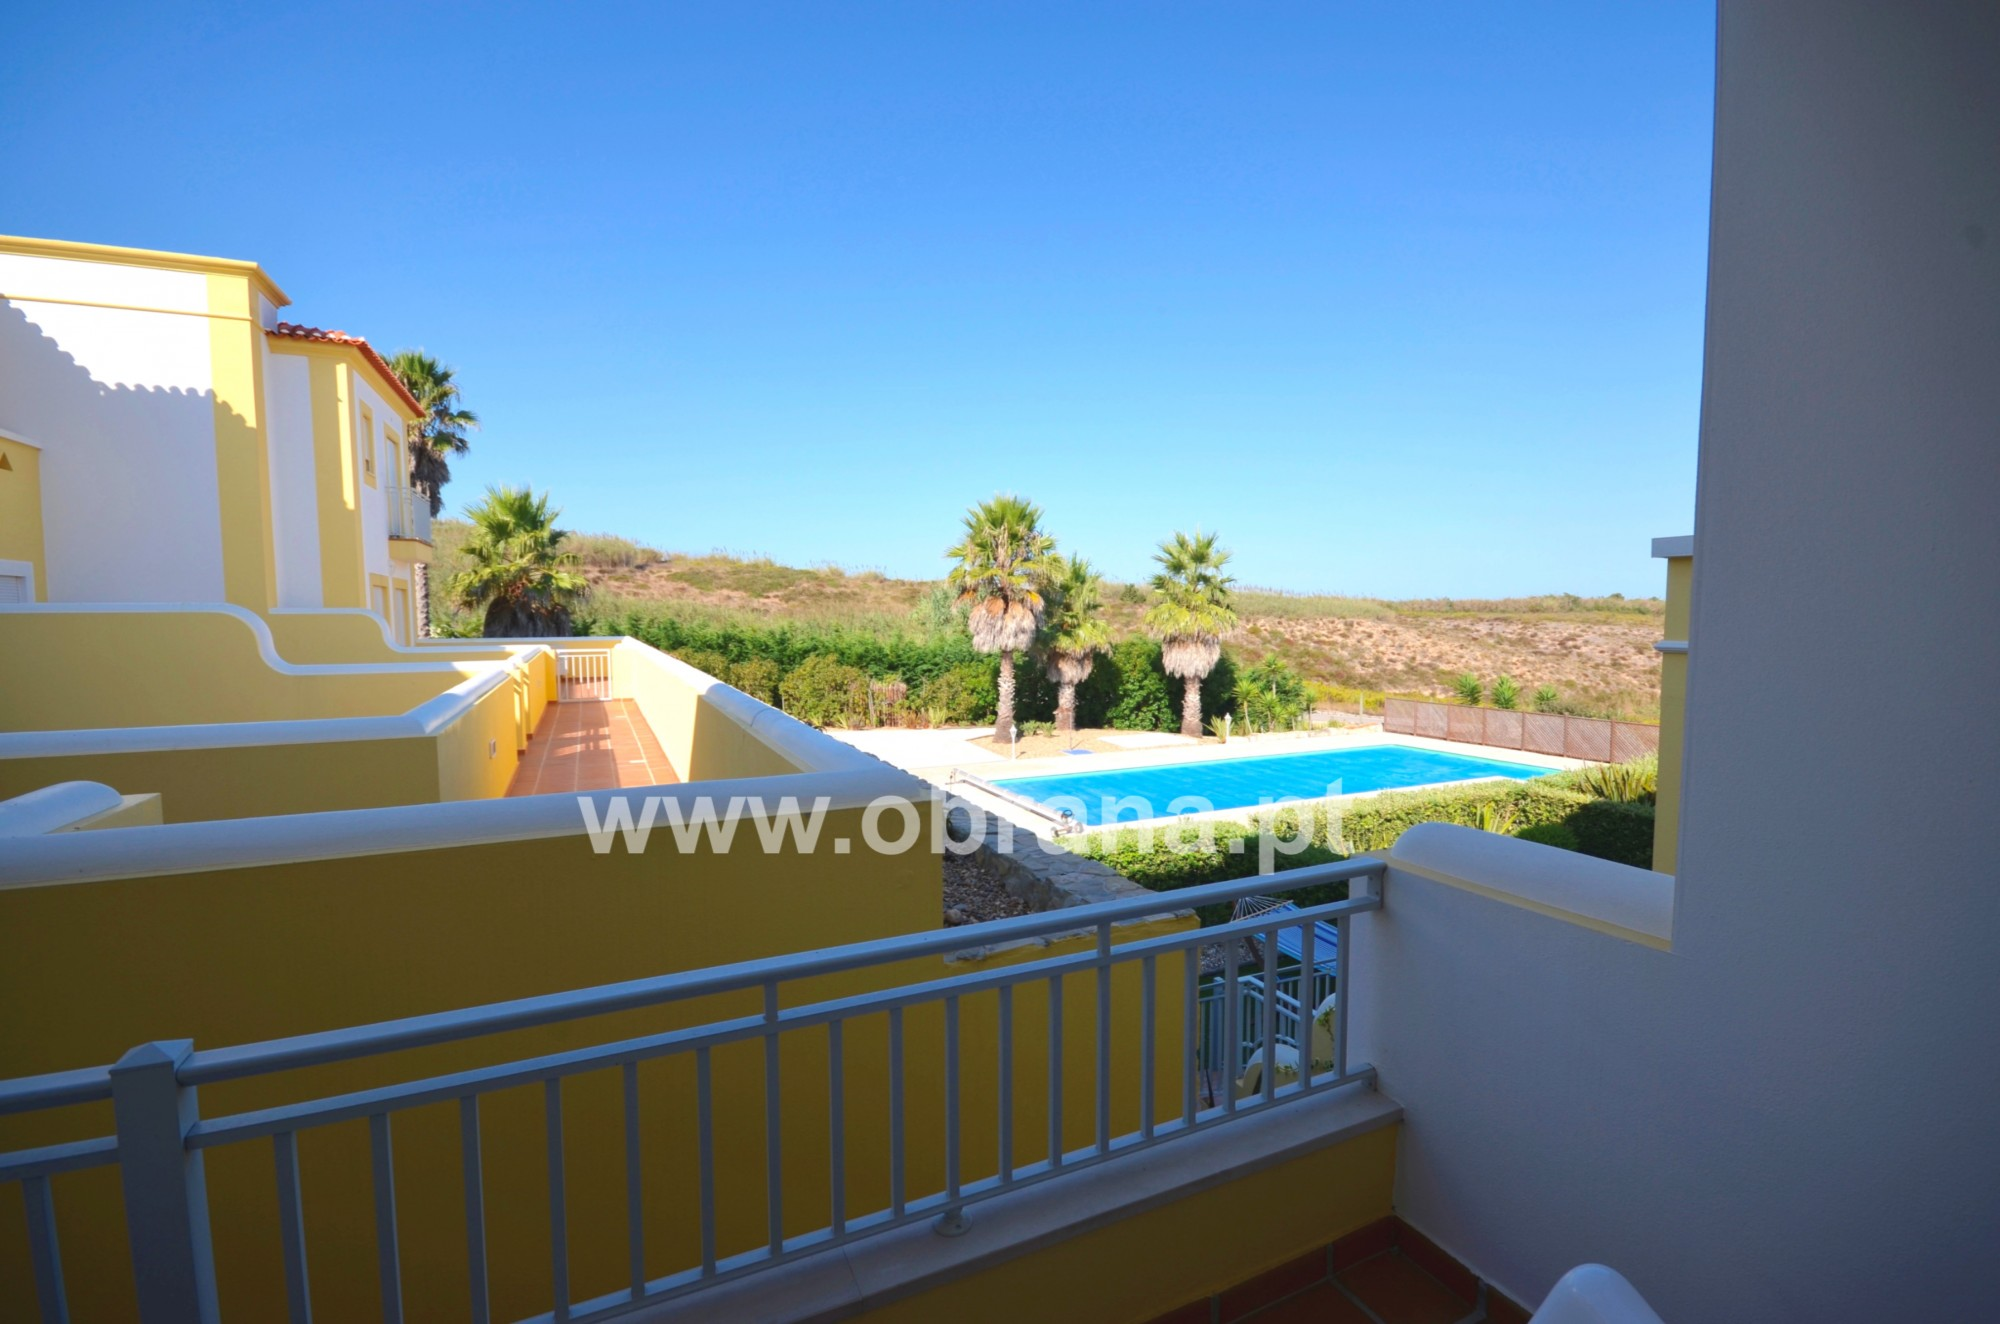 3 BEDROOM VILLA | SHARED POOL |  6 PERSONS | WALK TO BEACH | LONGTERM RENTAL